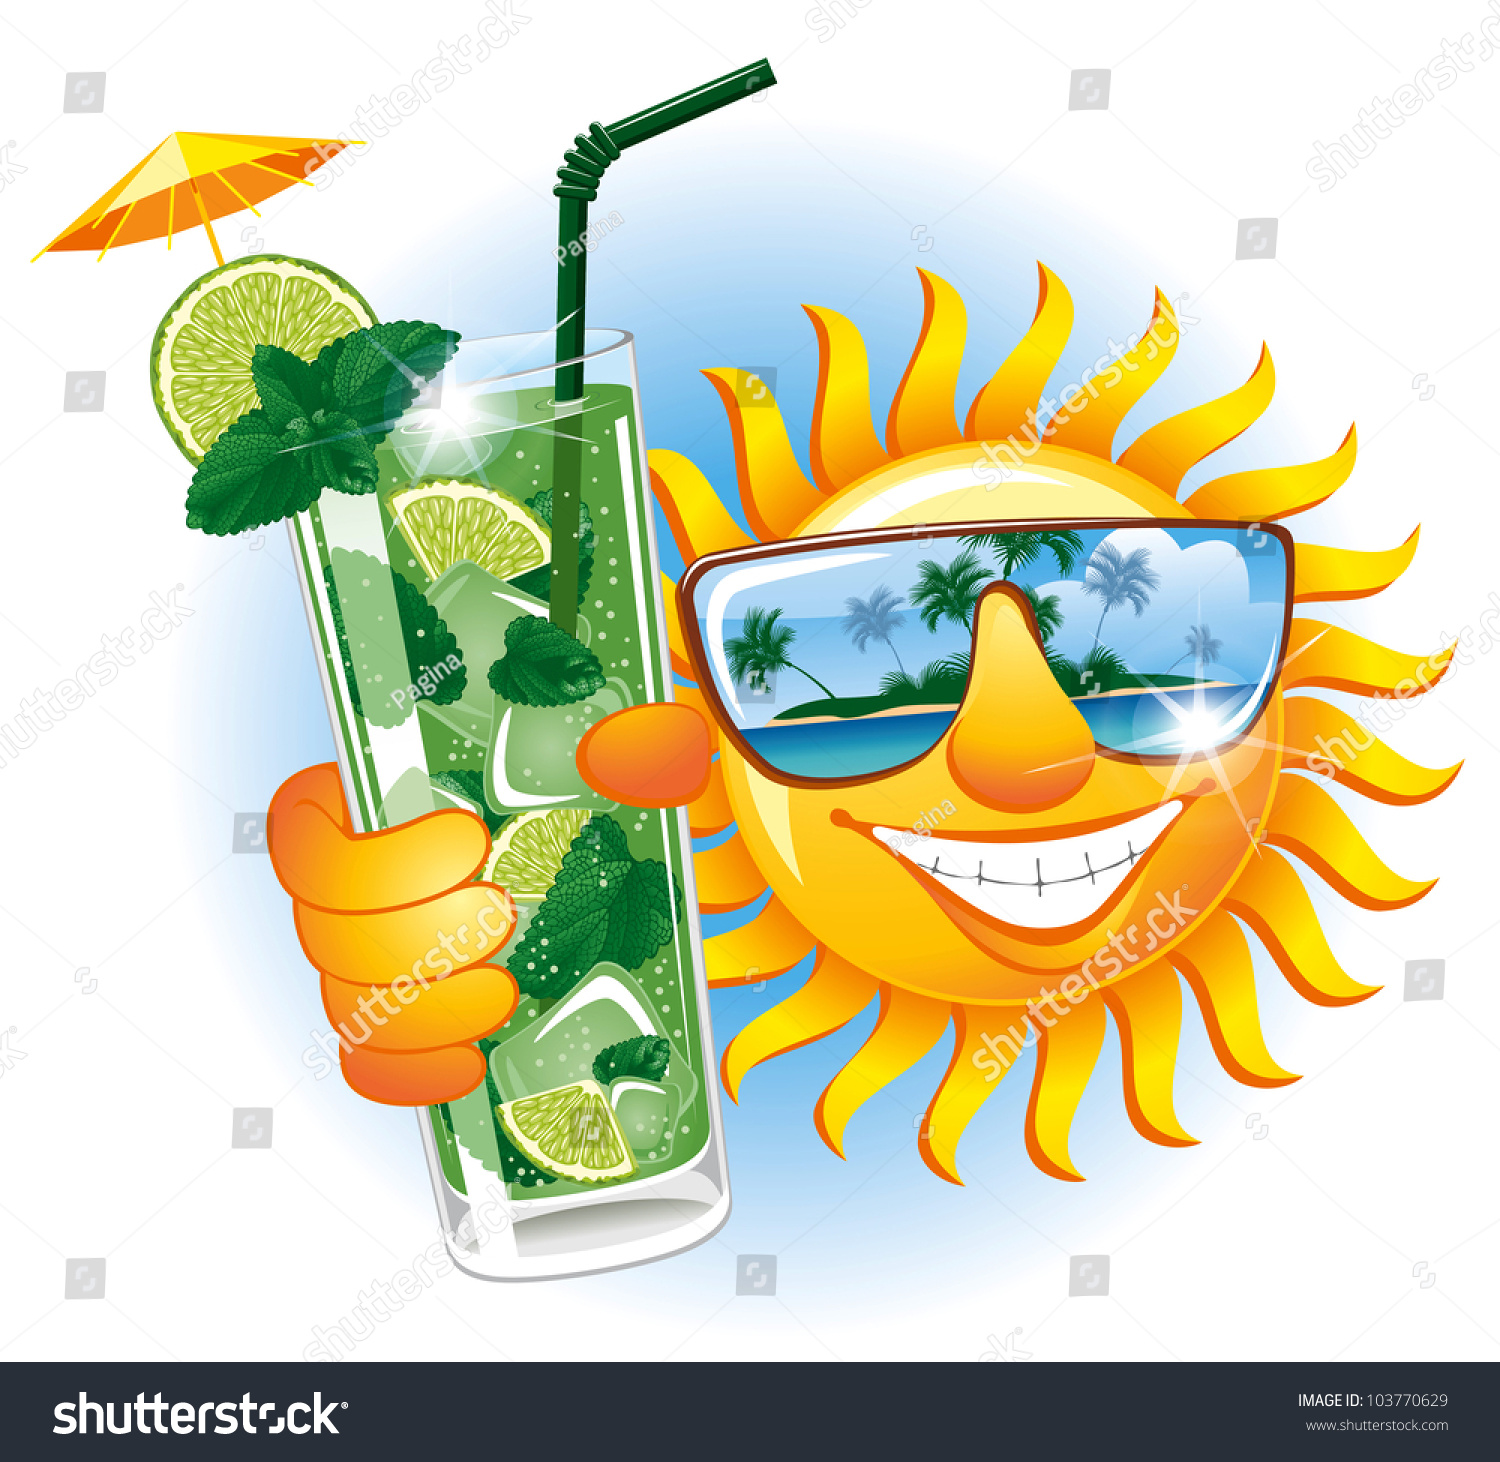 Cheerful Sun Sunglasses Refreshing Cocktail Stock Vector 103770629 Shutterstock